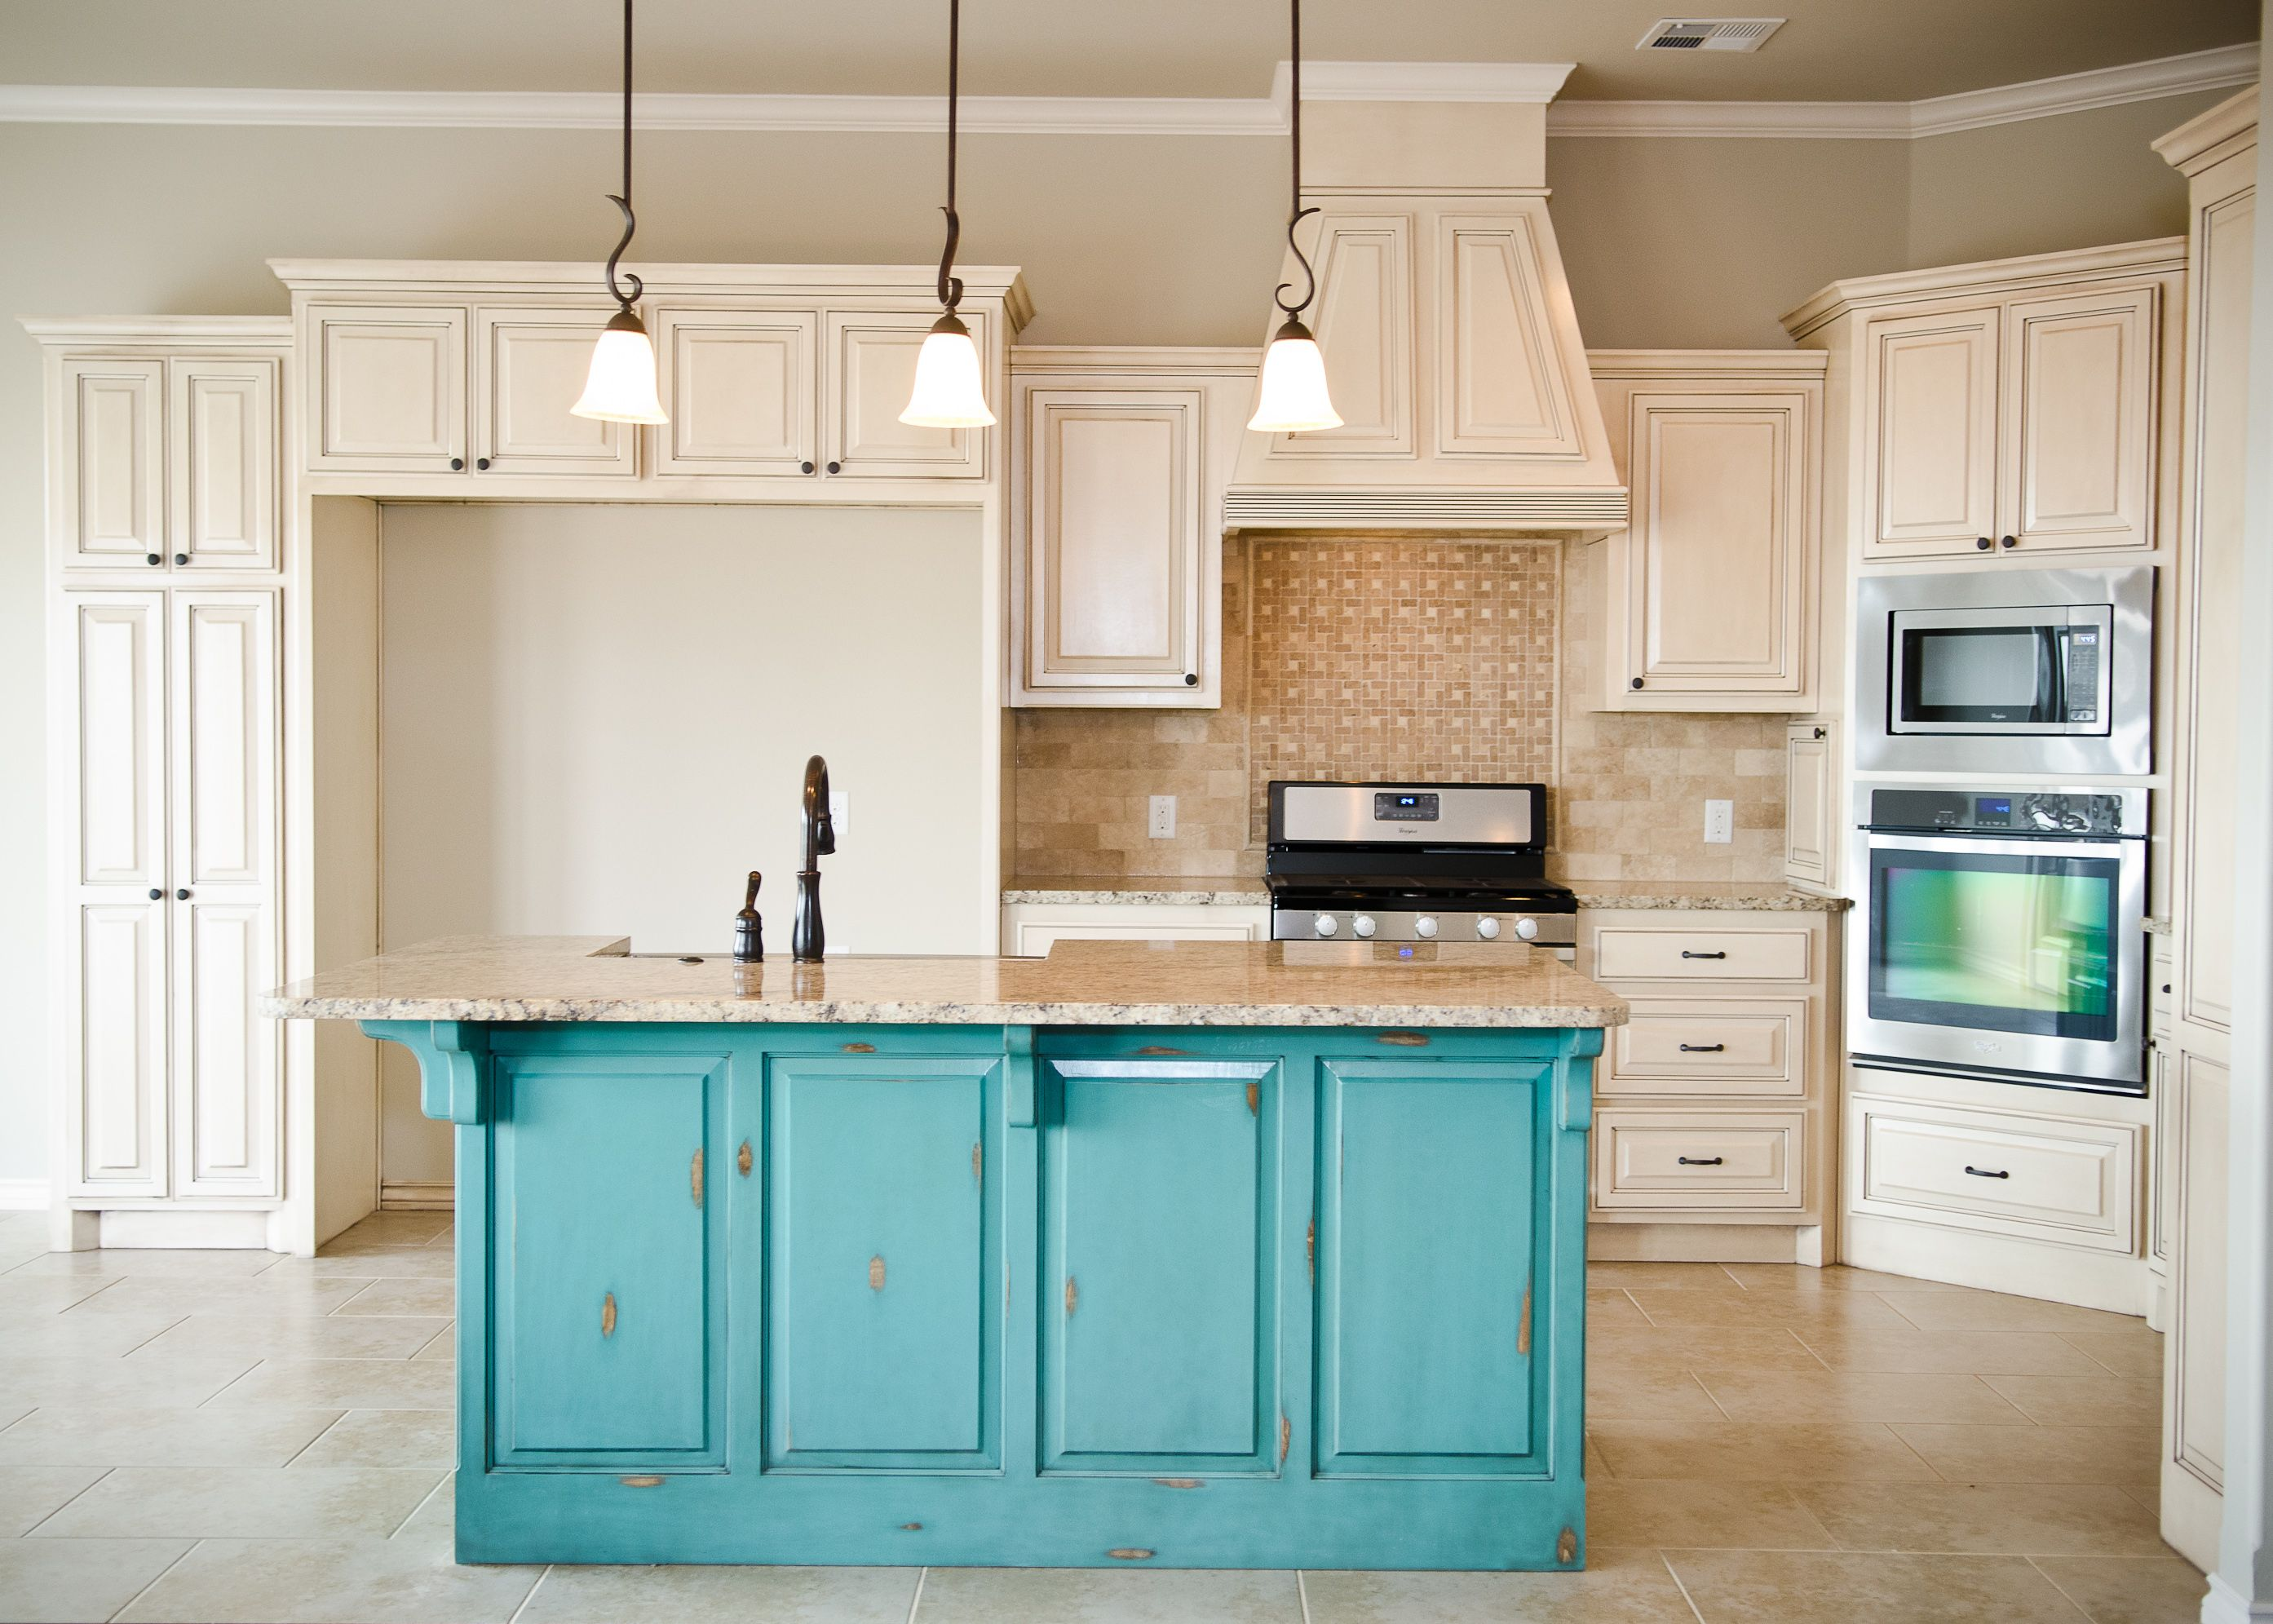 Splash of Color as Kitchen Cabinets - Ward Log Homes | Home ideas in ...